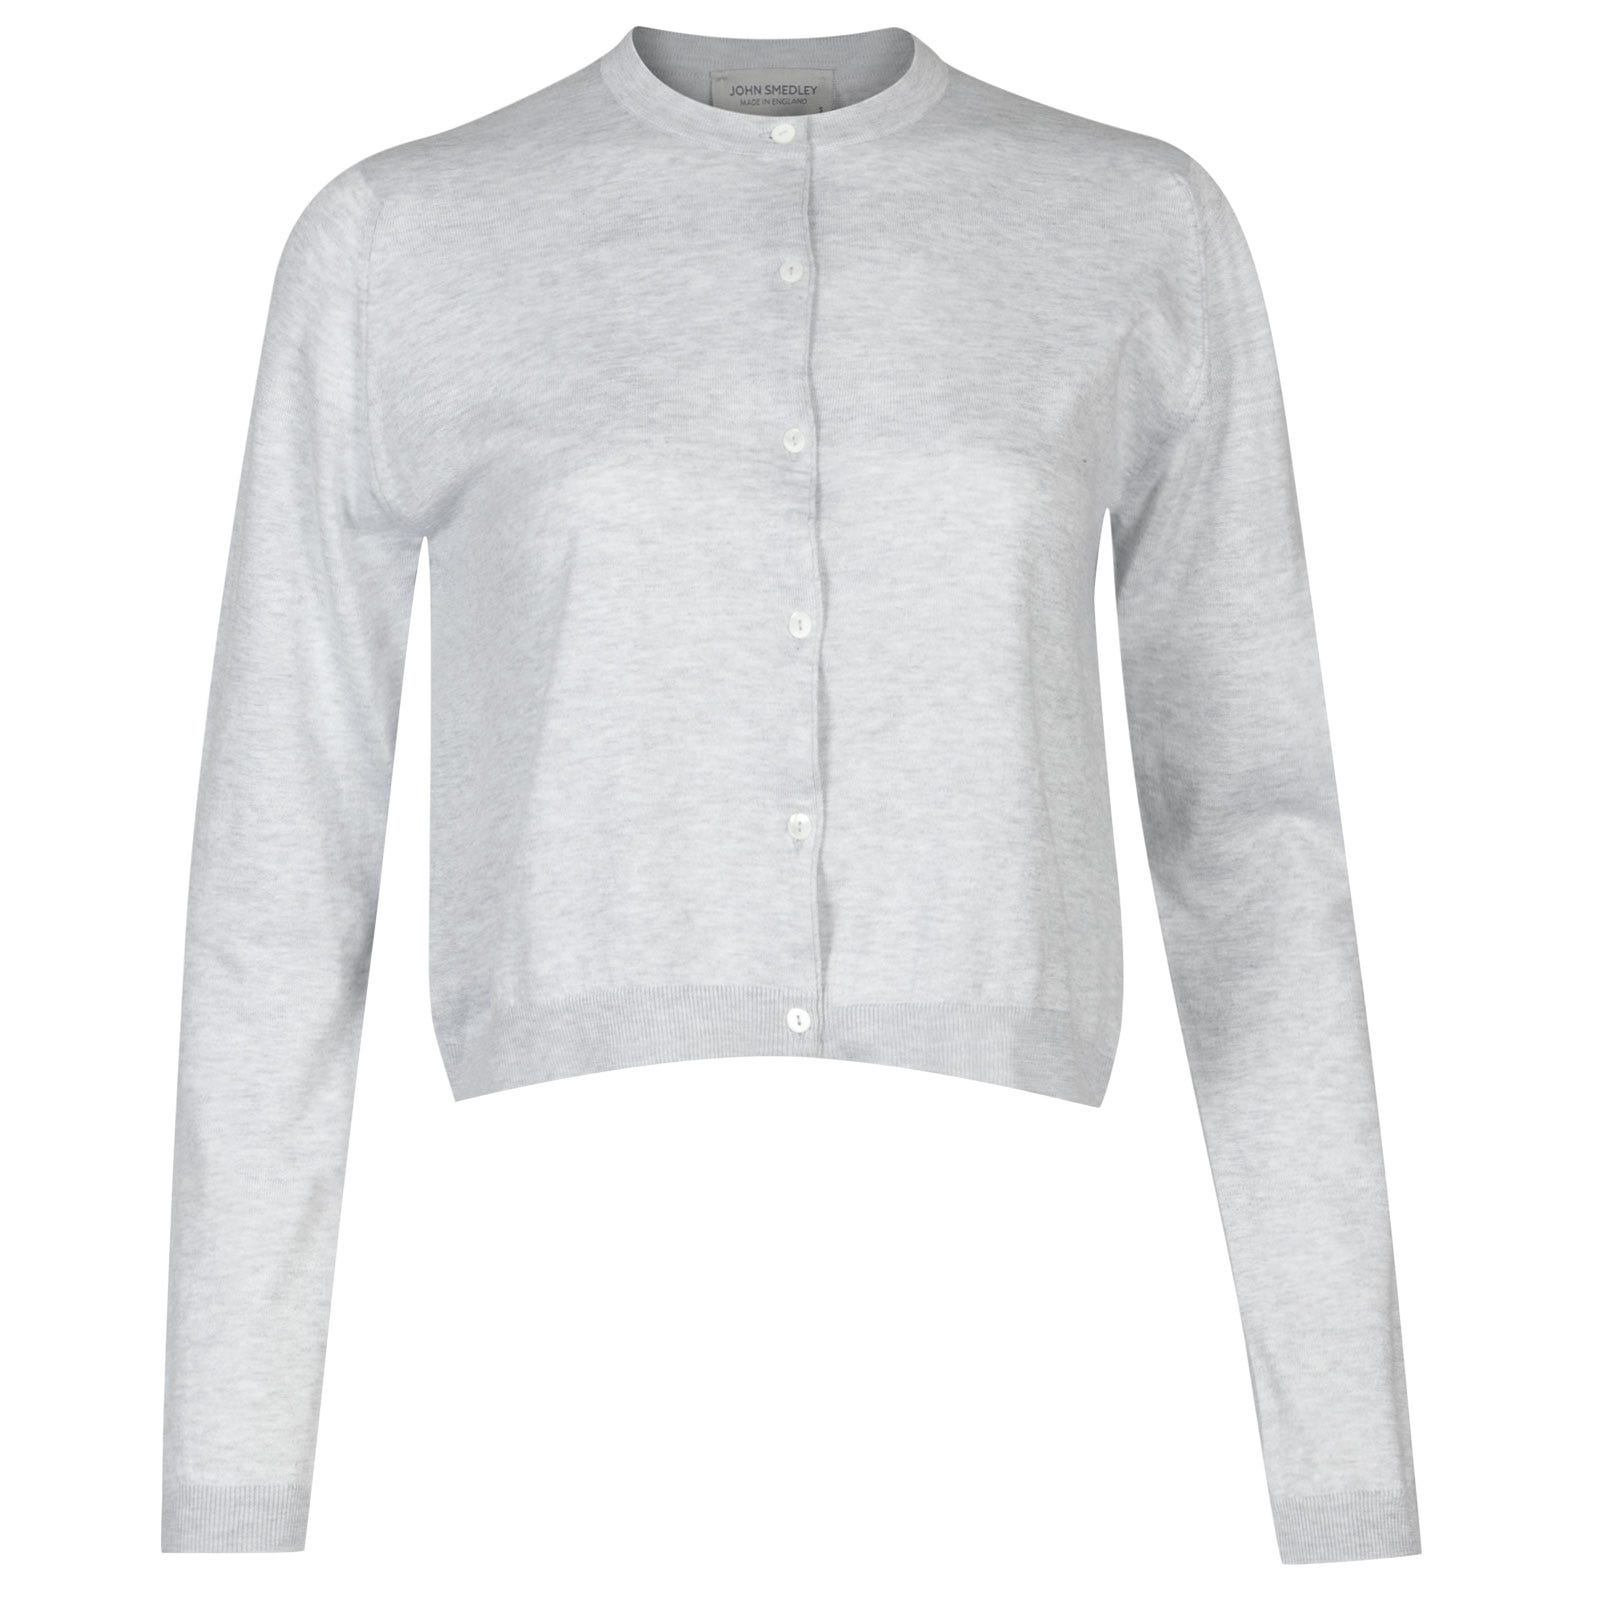 John Smedley Bowes Sea Island Cotton Cardigan in Feather Grey-XL